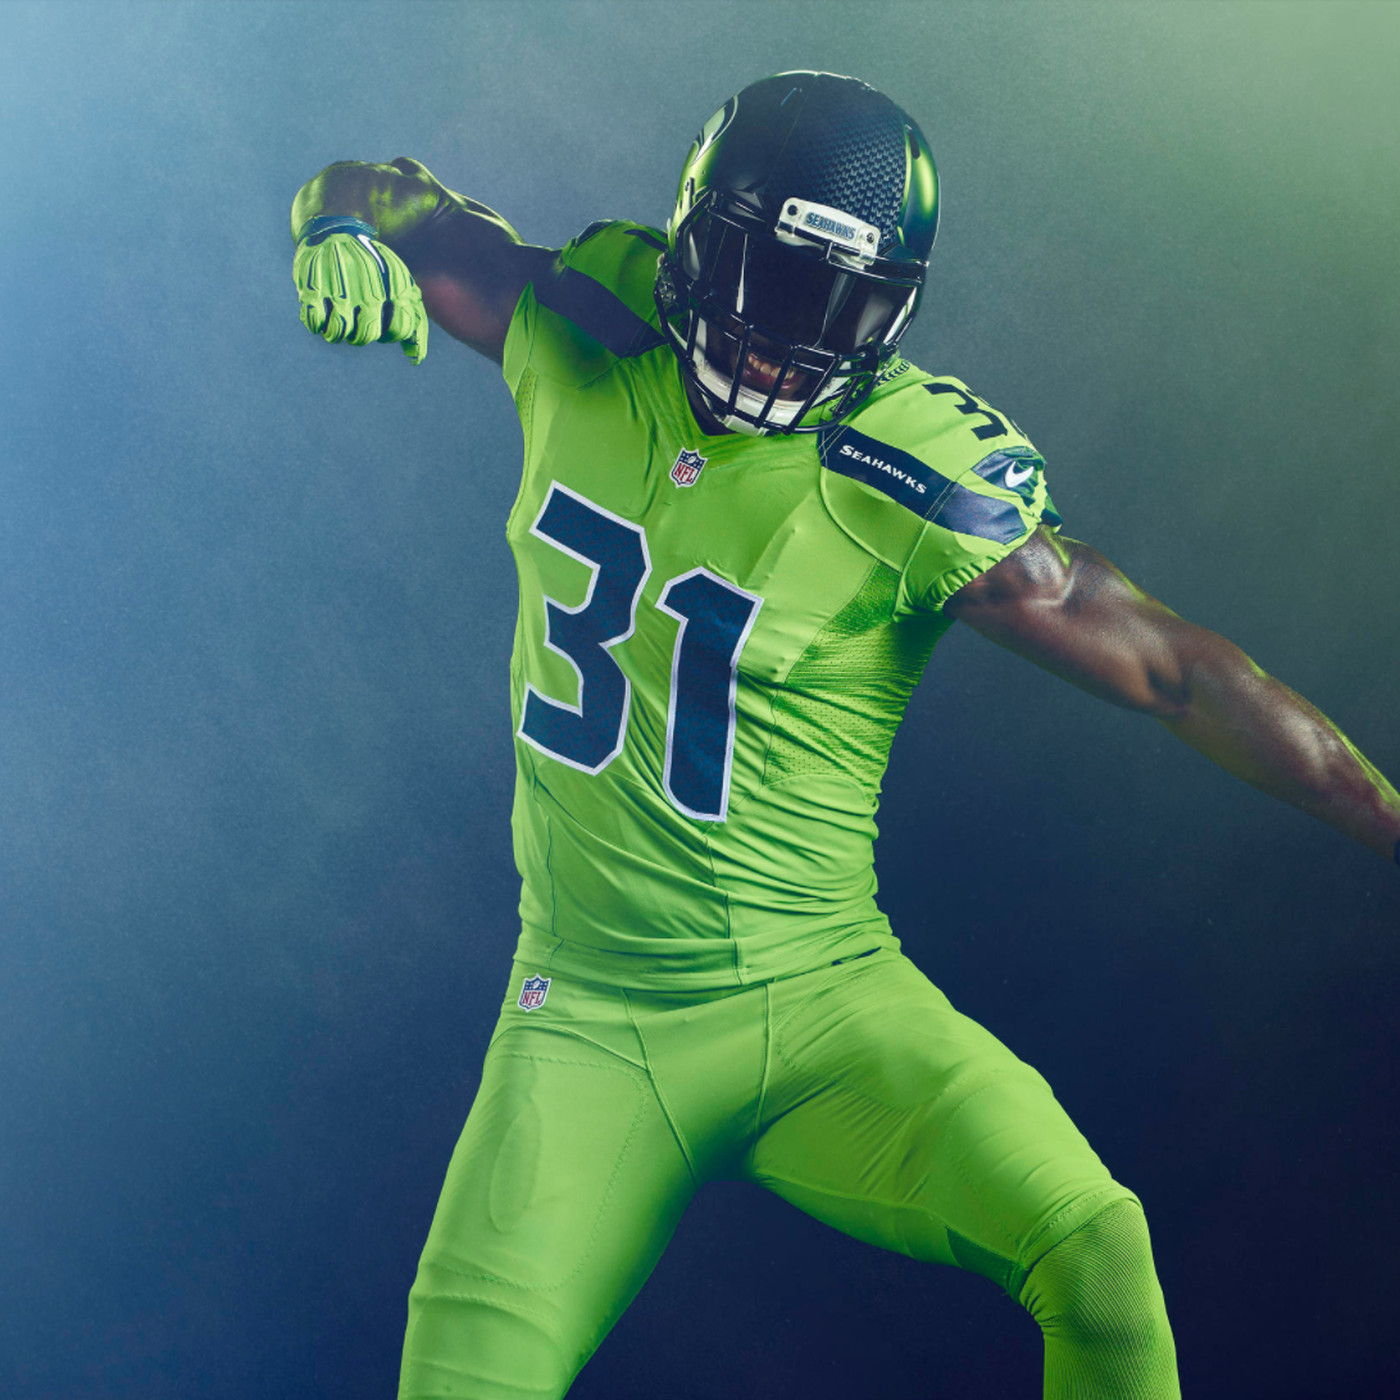 cheaper a4f92 6e2b6 Seahawks are wearing the best Color Rush uniforms yet on ...